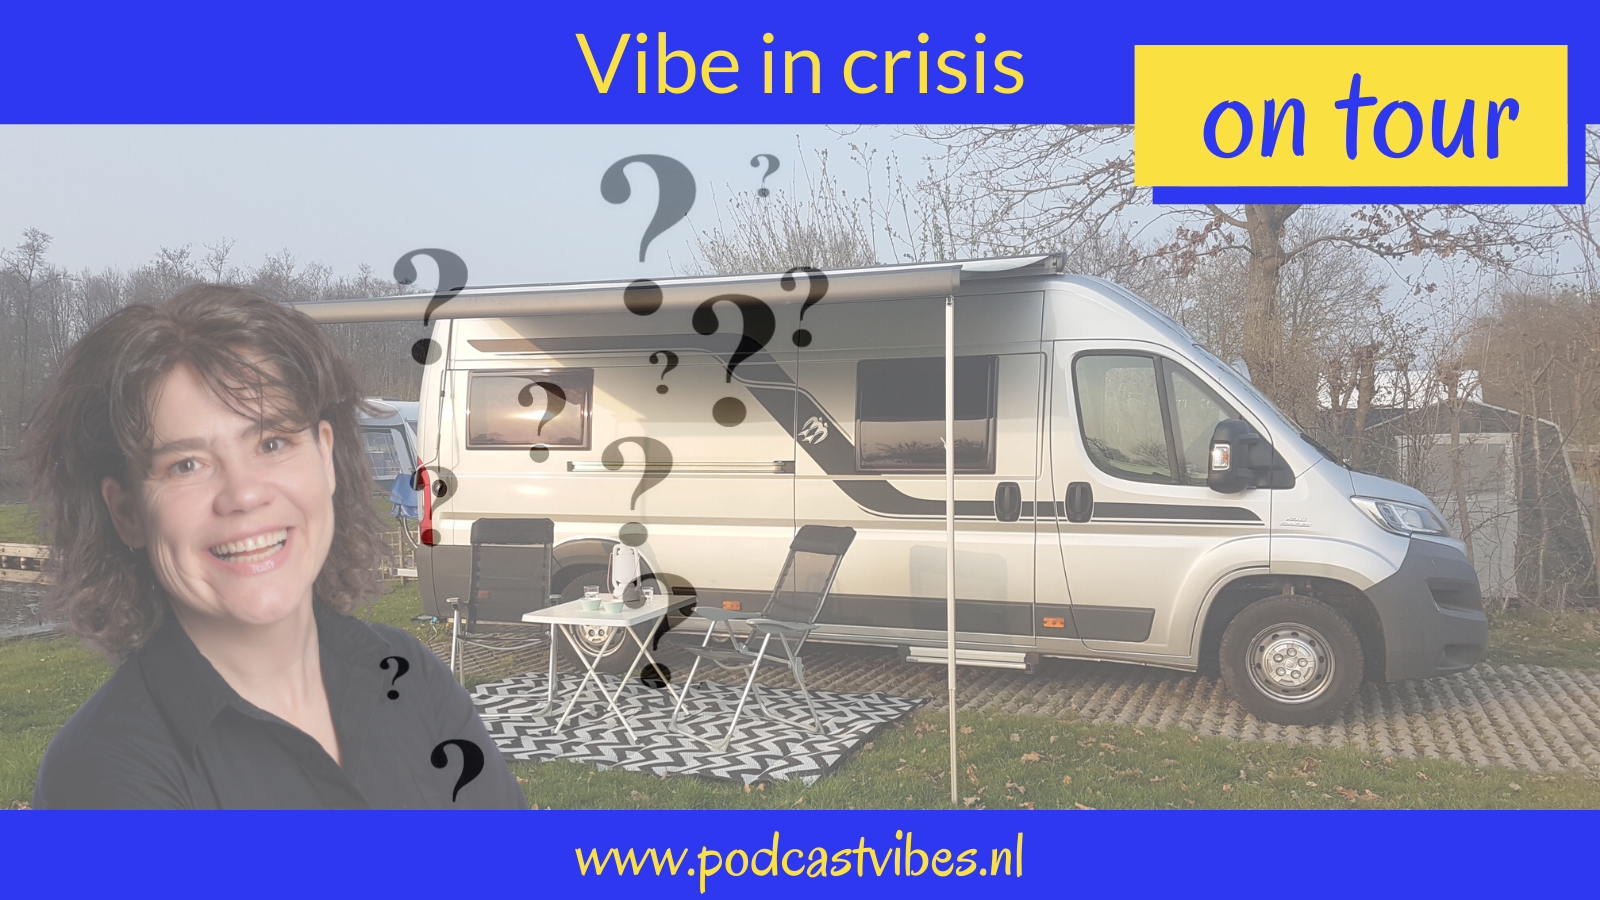 Vibe in crisis on tour angele bakker podcasten podcast interview